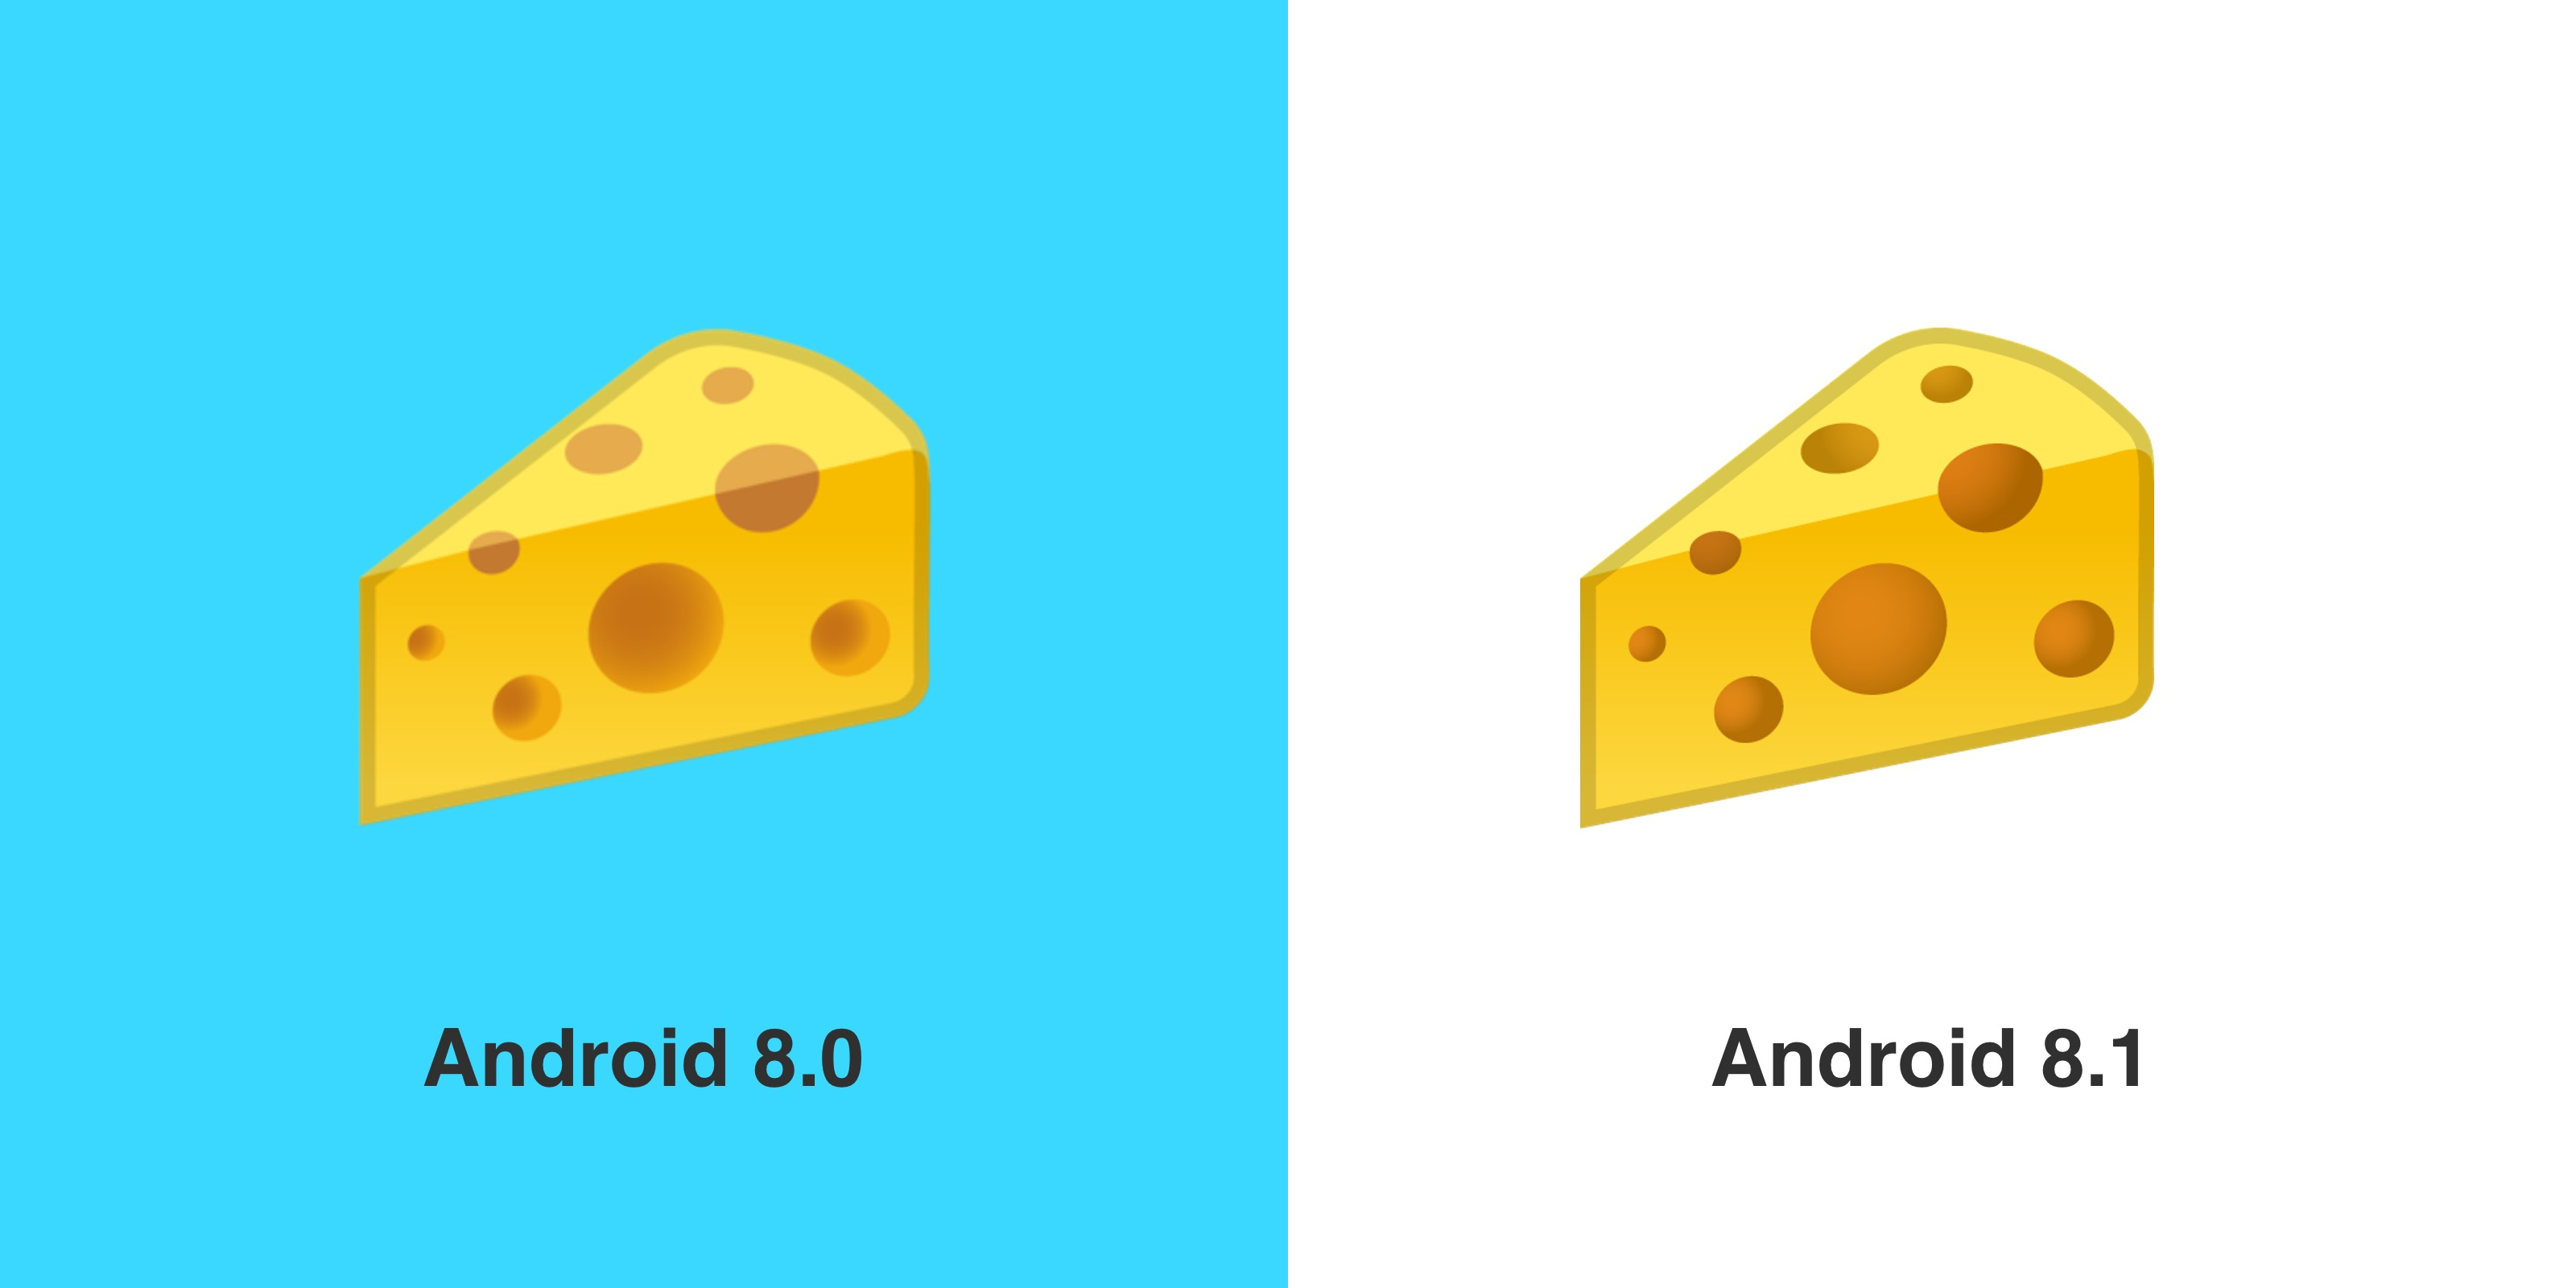 google-cheese-emoji-before-after-emojipedia